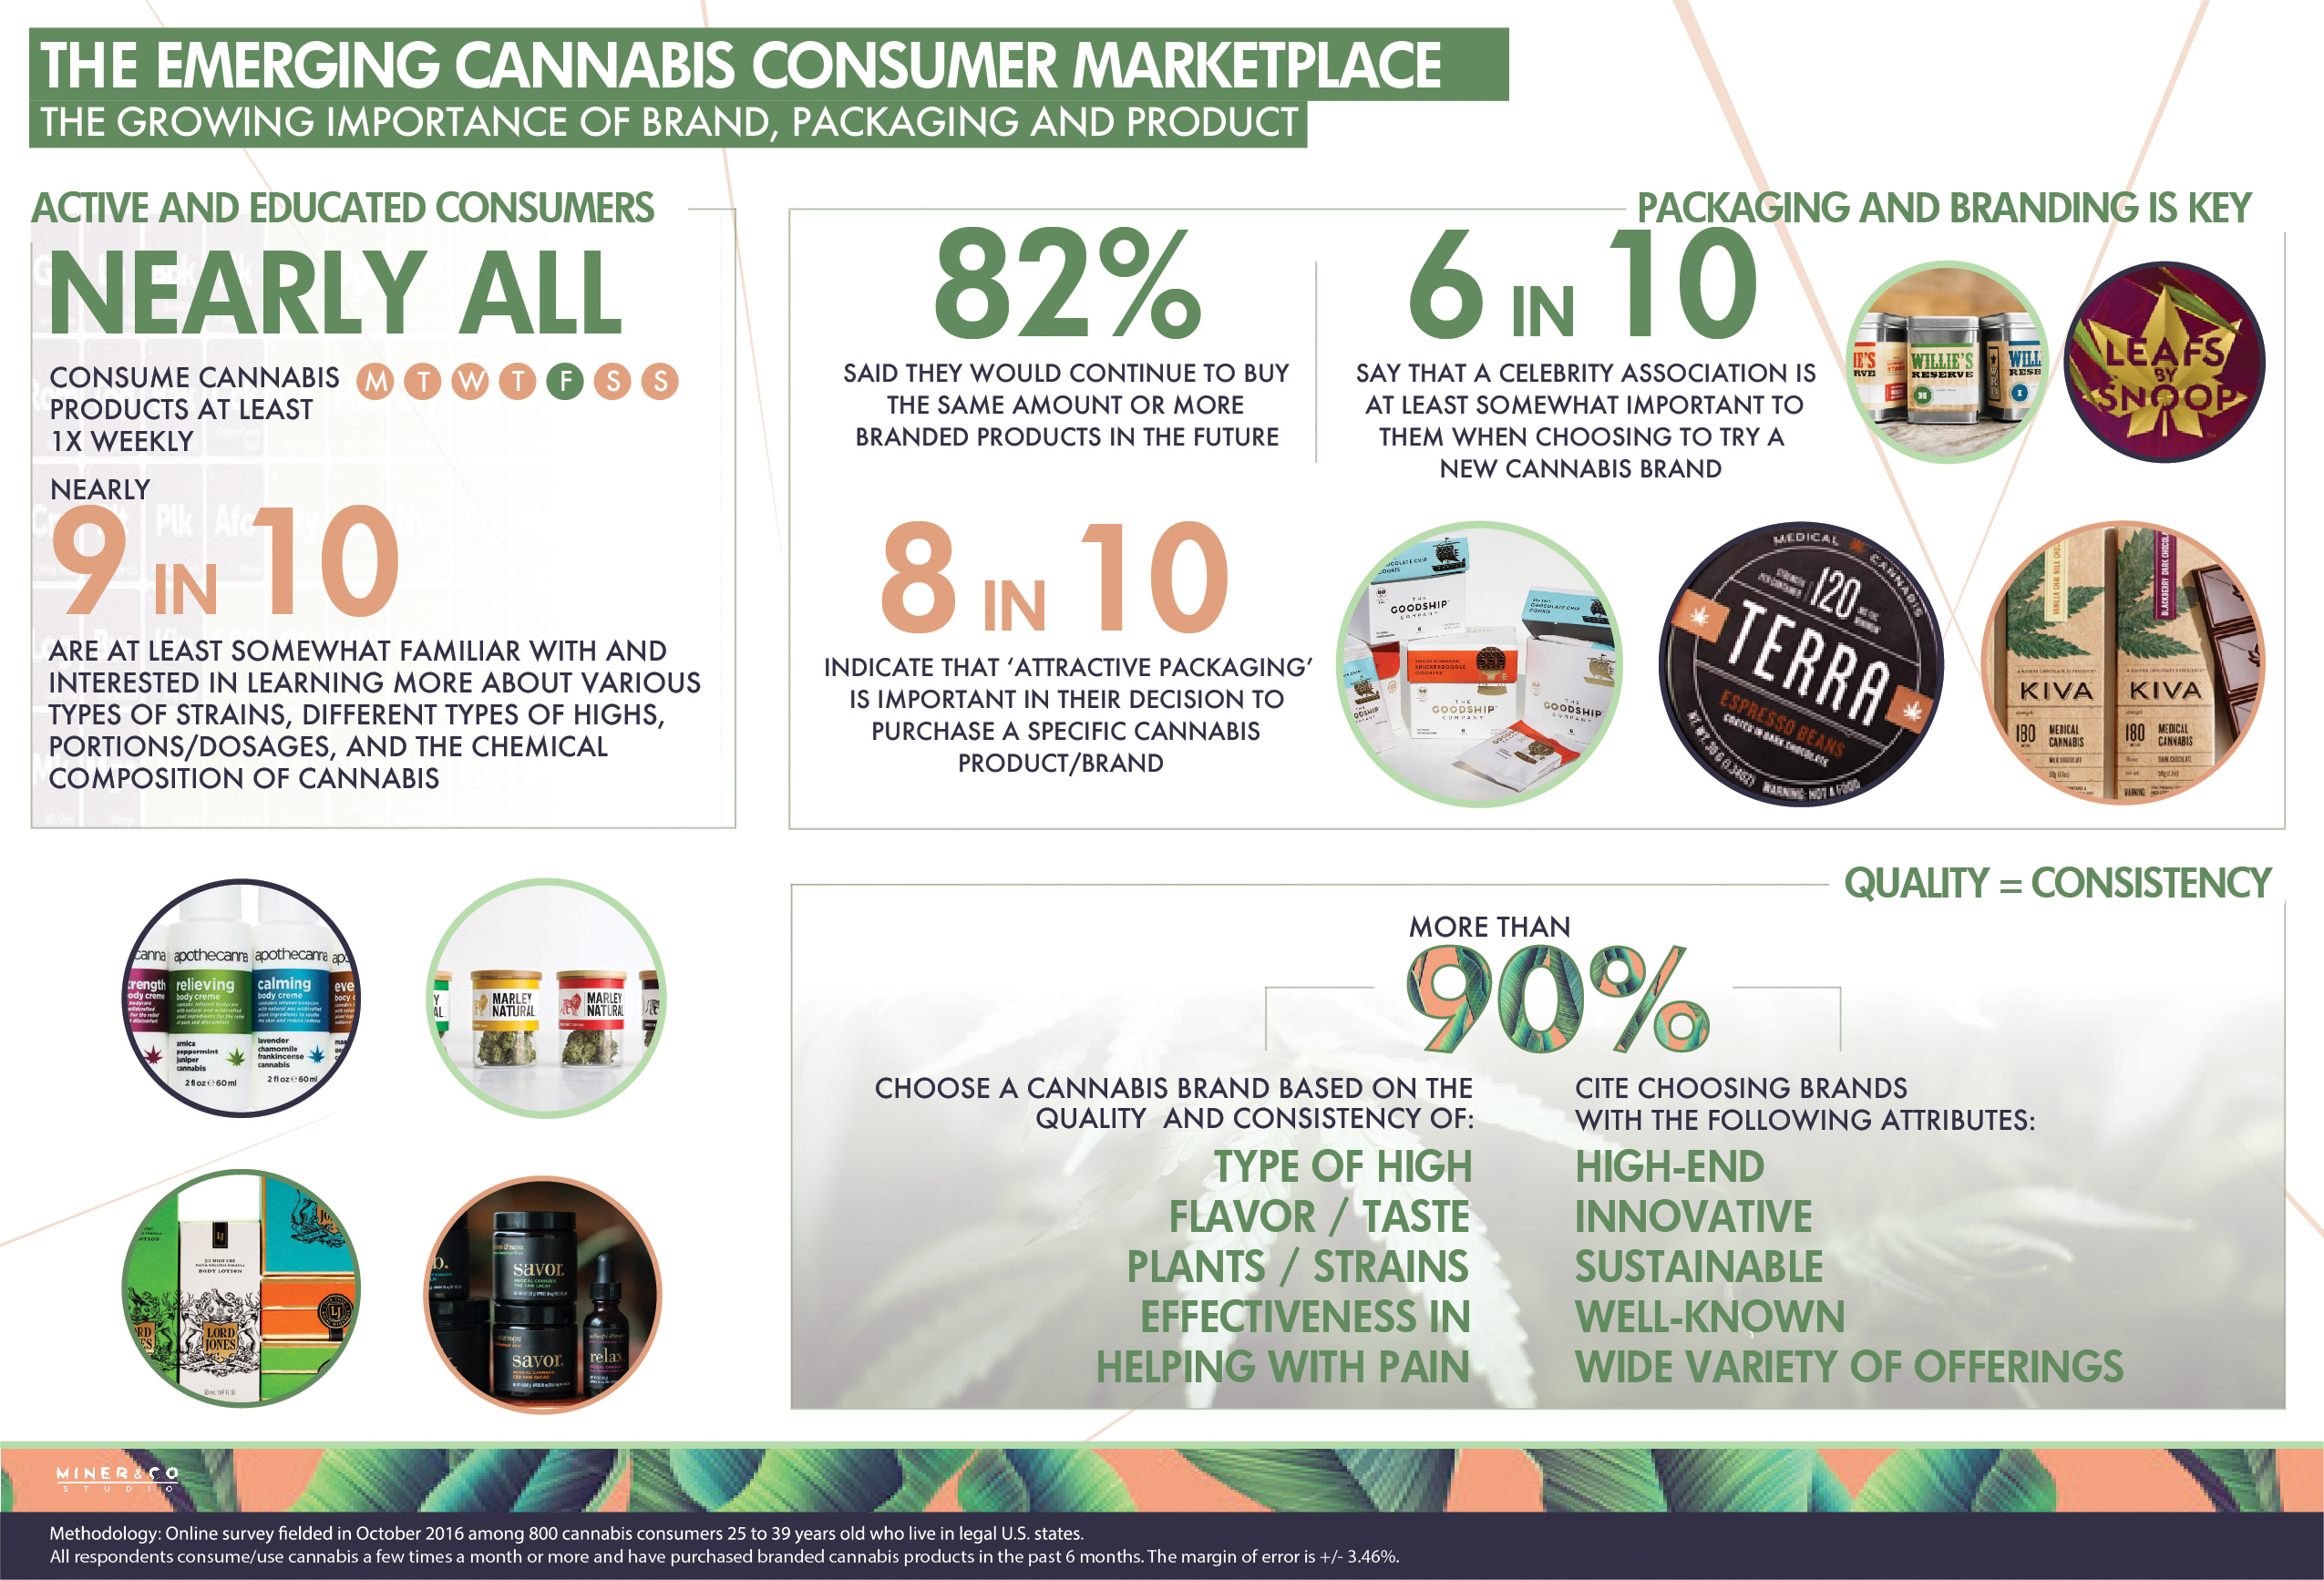 The importance of good branding and packaging is quickly growing; having a celebrity-backed brand is also seen as positive. (Graphic: Business Wire)